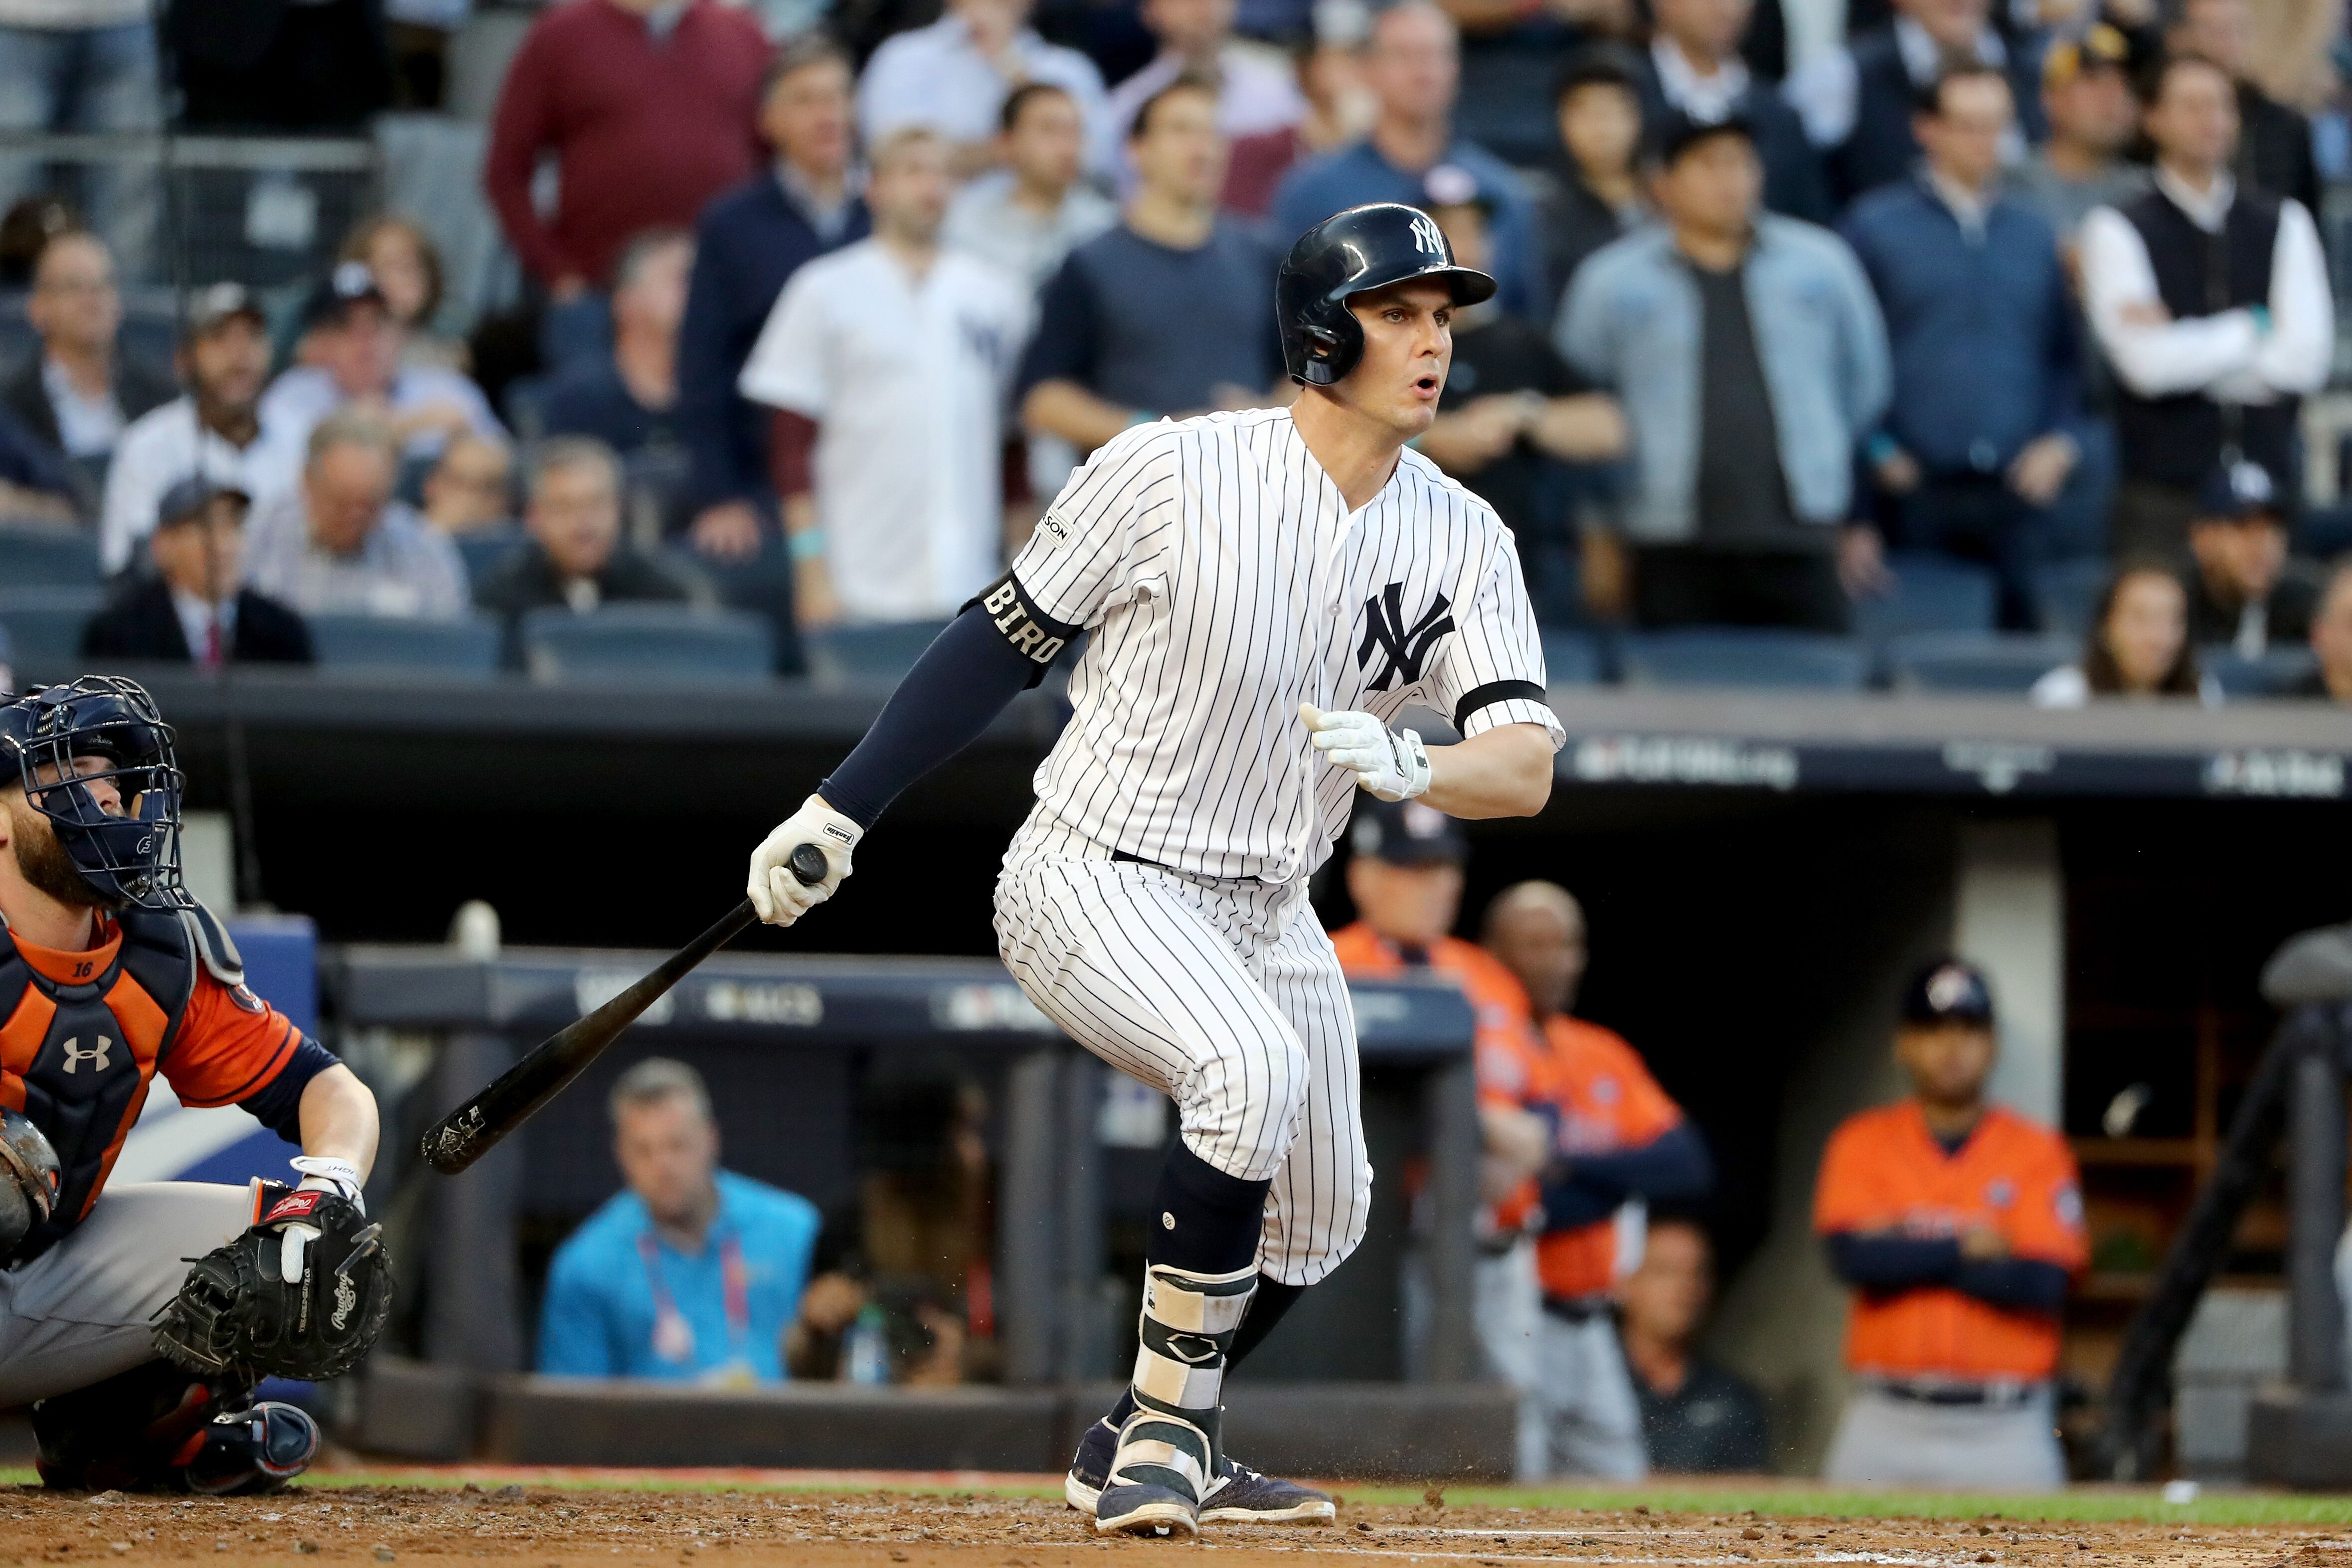 862895440-league-championship-series-houston-astros-v-new-york-yankees-game-five.jpg